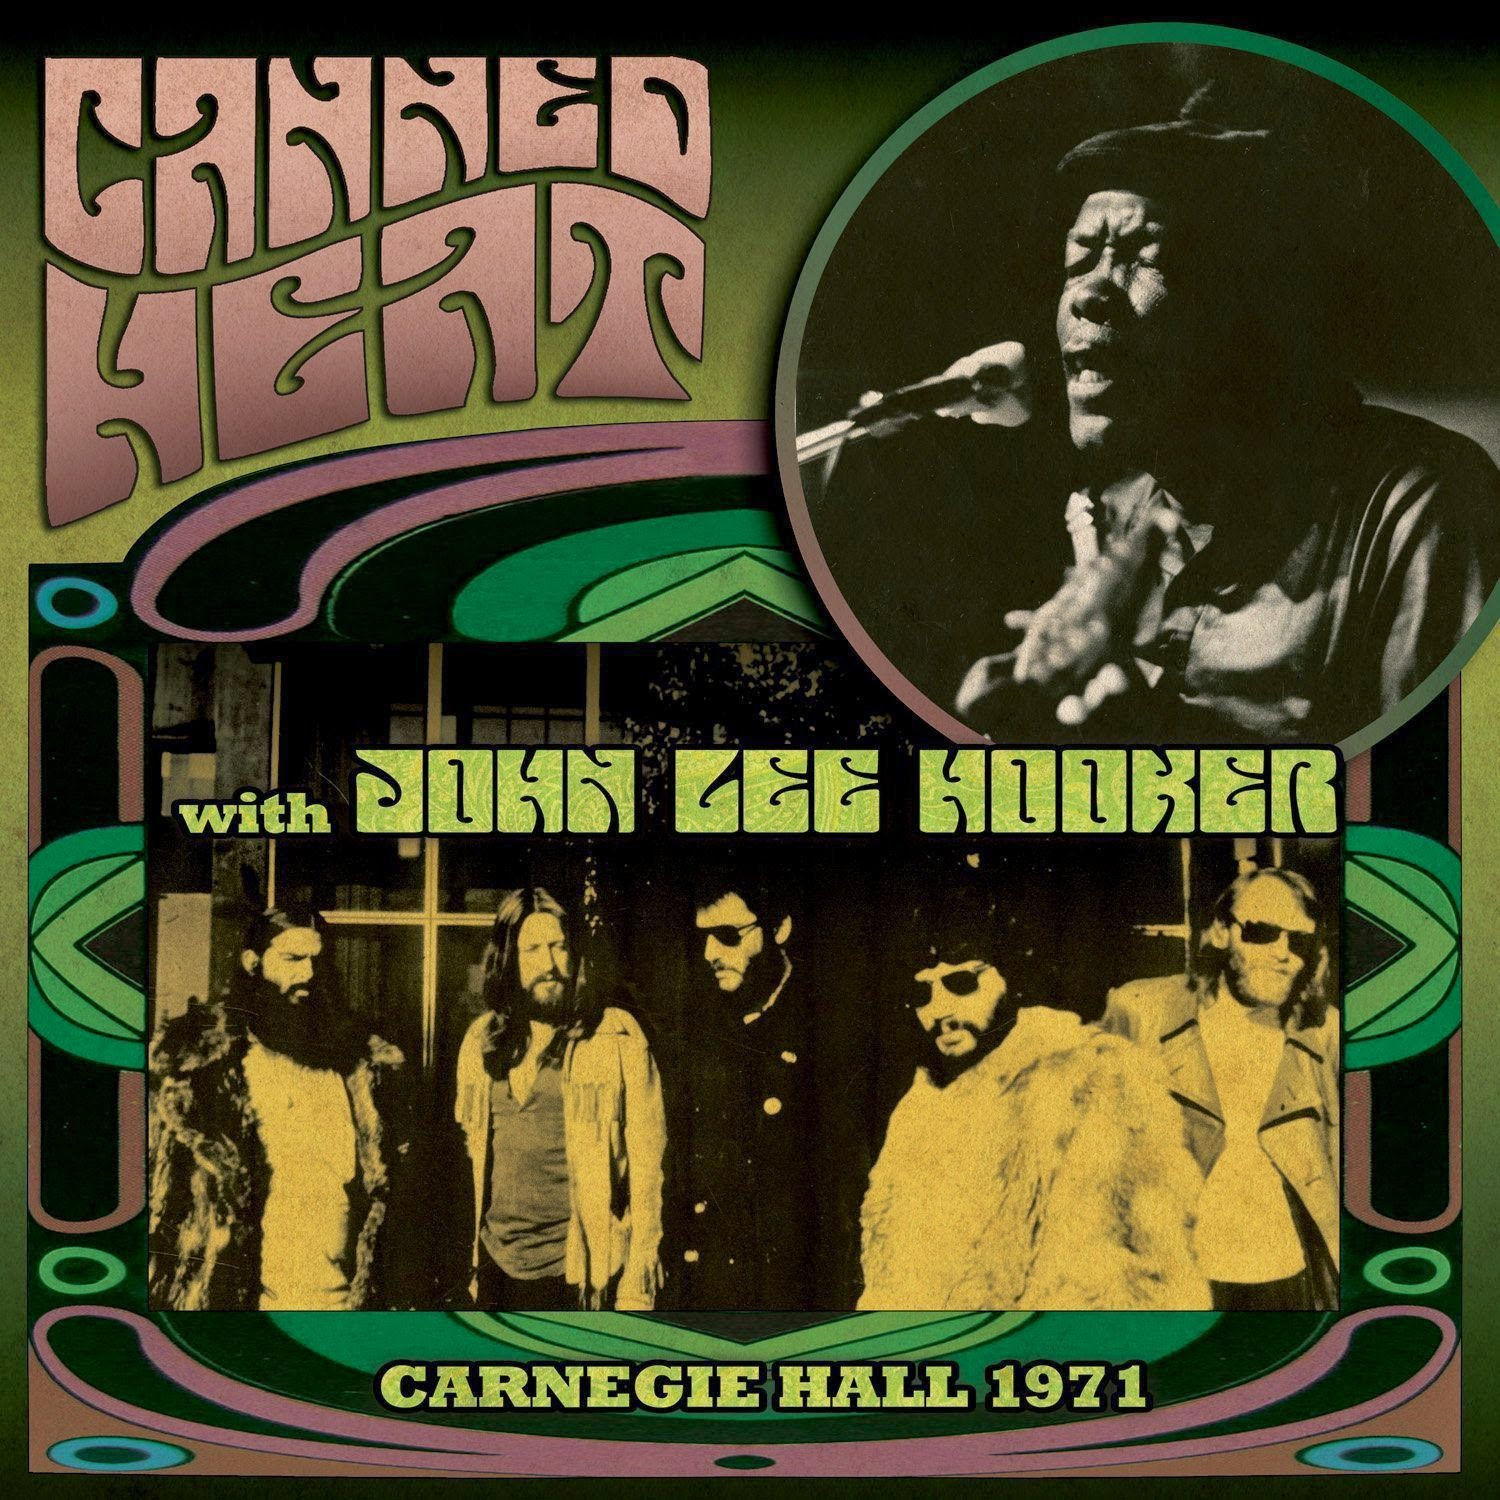 Canned Heat with John Lee Hooker Carnegie Hall 1971